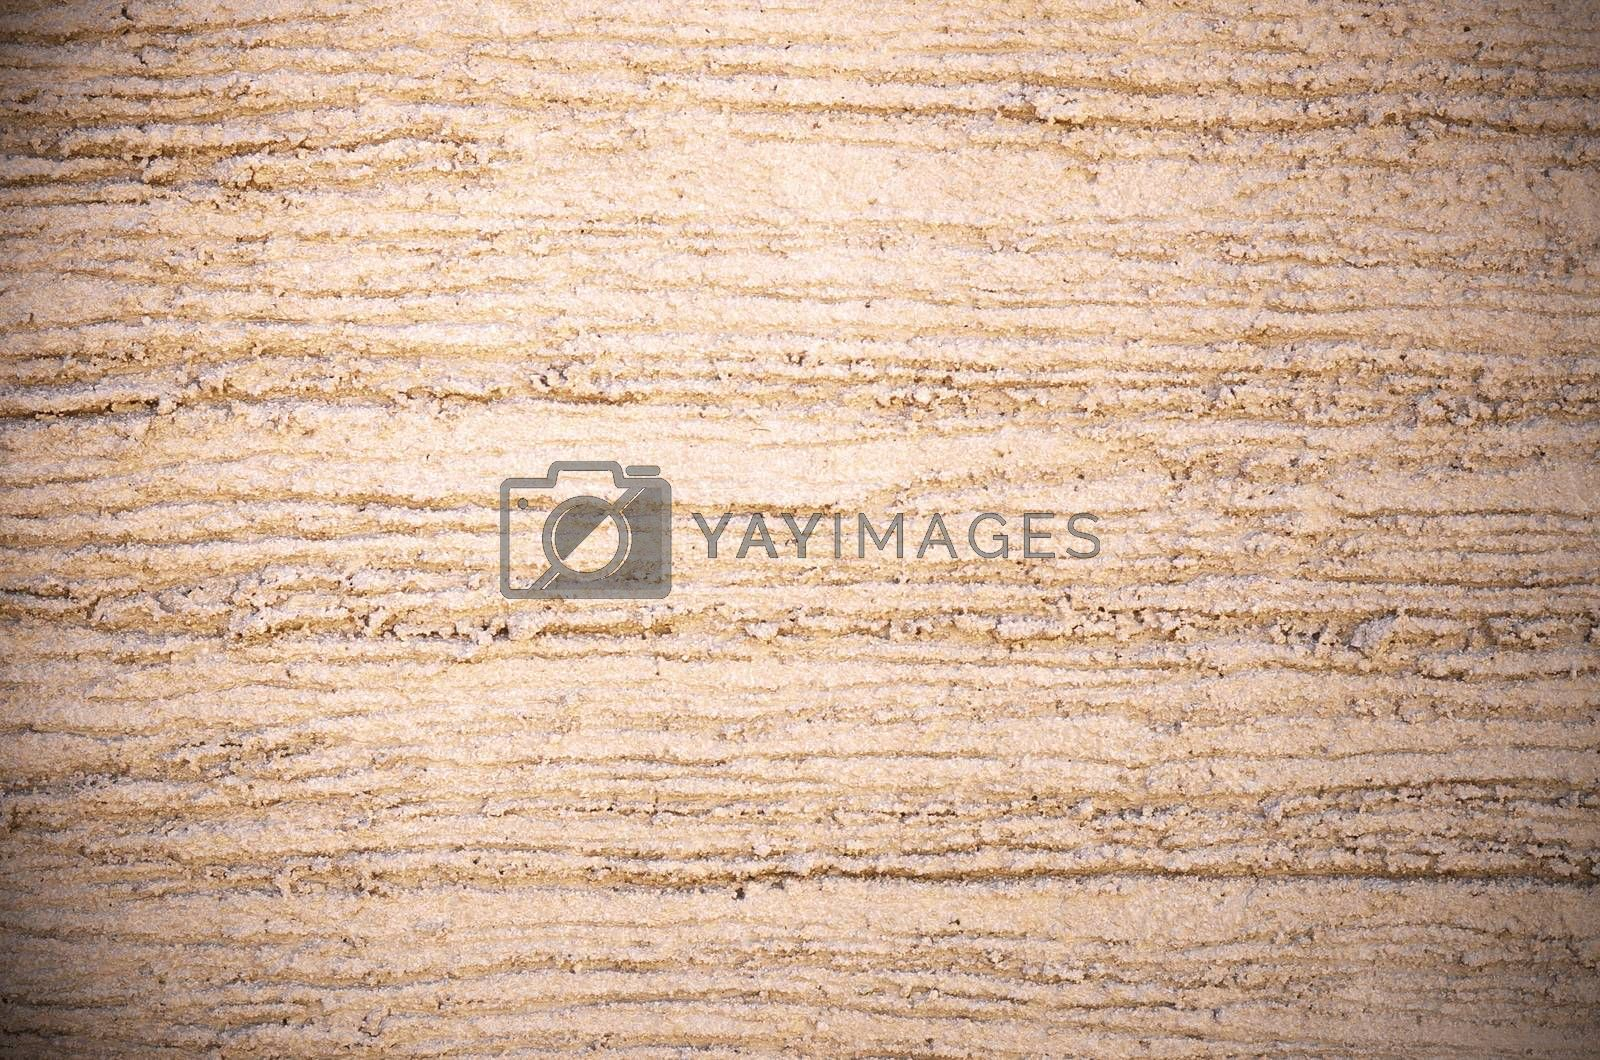 Background Pattern, Concrete Floor Texture or Cement Road Texture with Copy Space for Text Decorated.